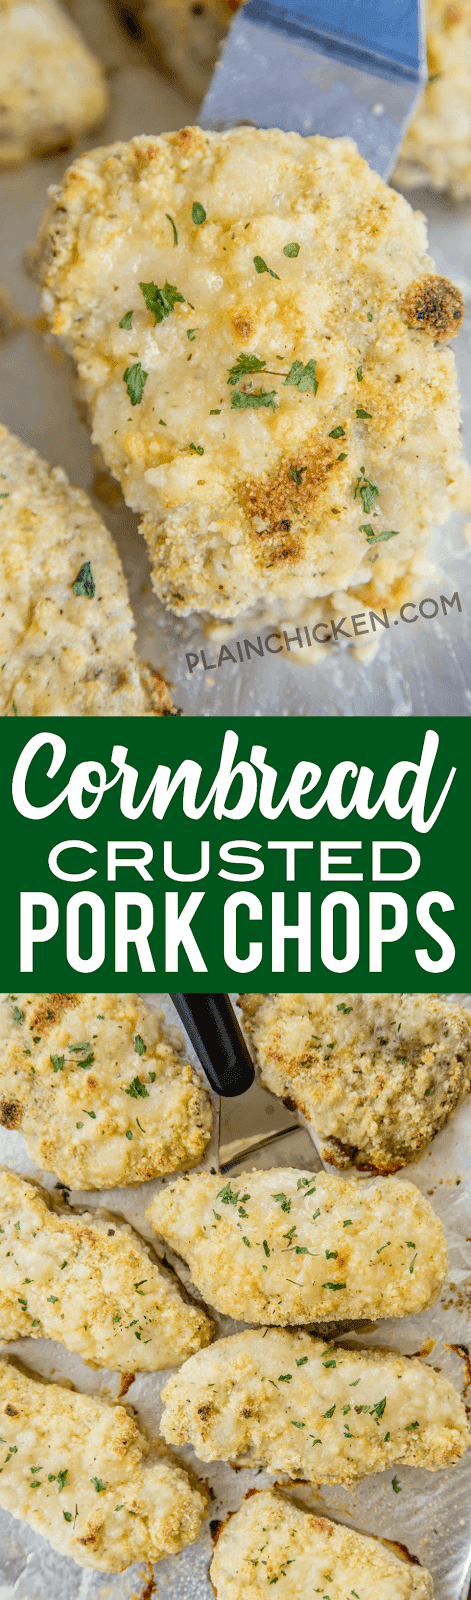 Cornbread Crusted Pork Chops - ready in under 30 minutes! Everyone LOVED these pork chops! Pork chops coated in cornbread mix and ranch dressing. The whole family cleaned their plate! This easy weeknight recipe is going into the dinner rotation!